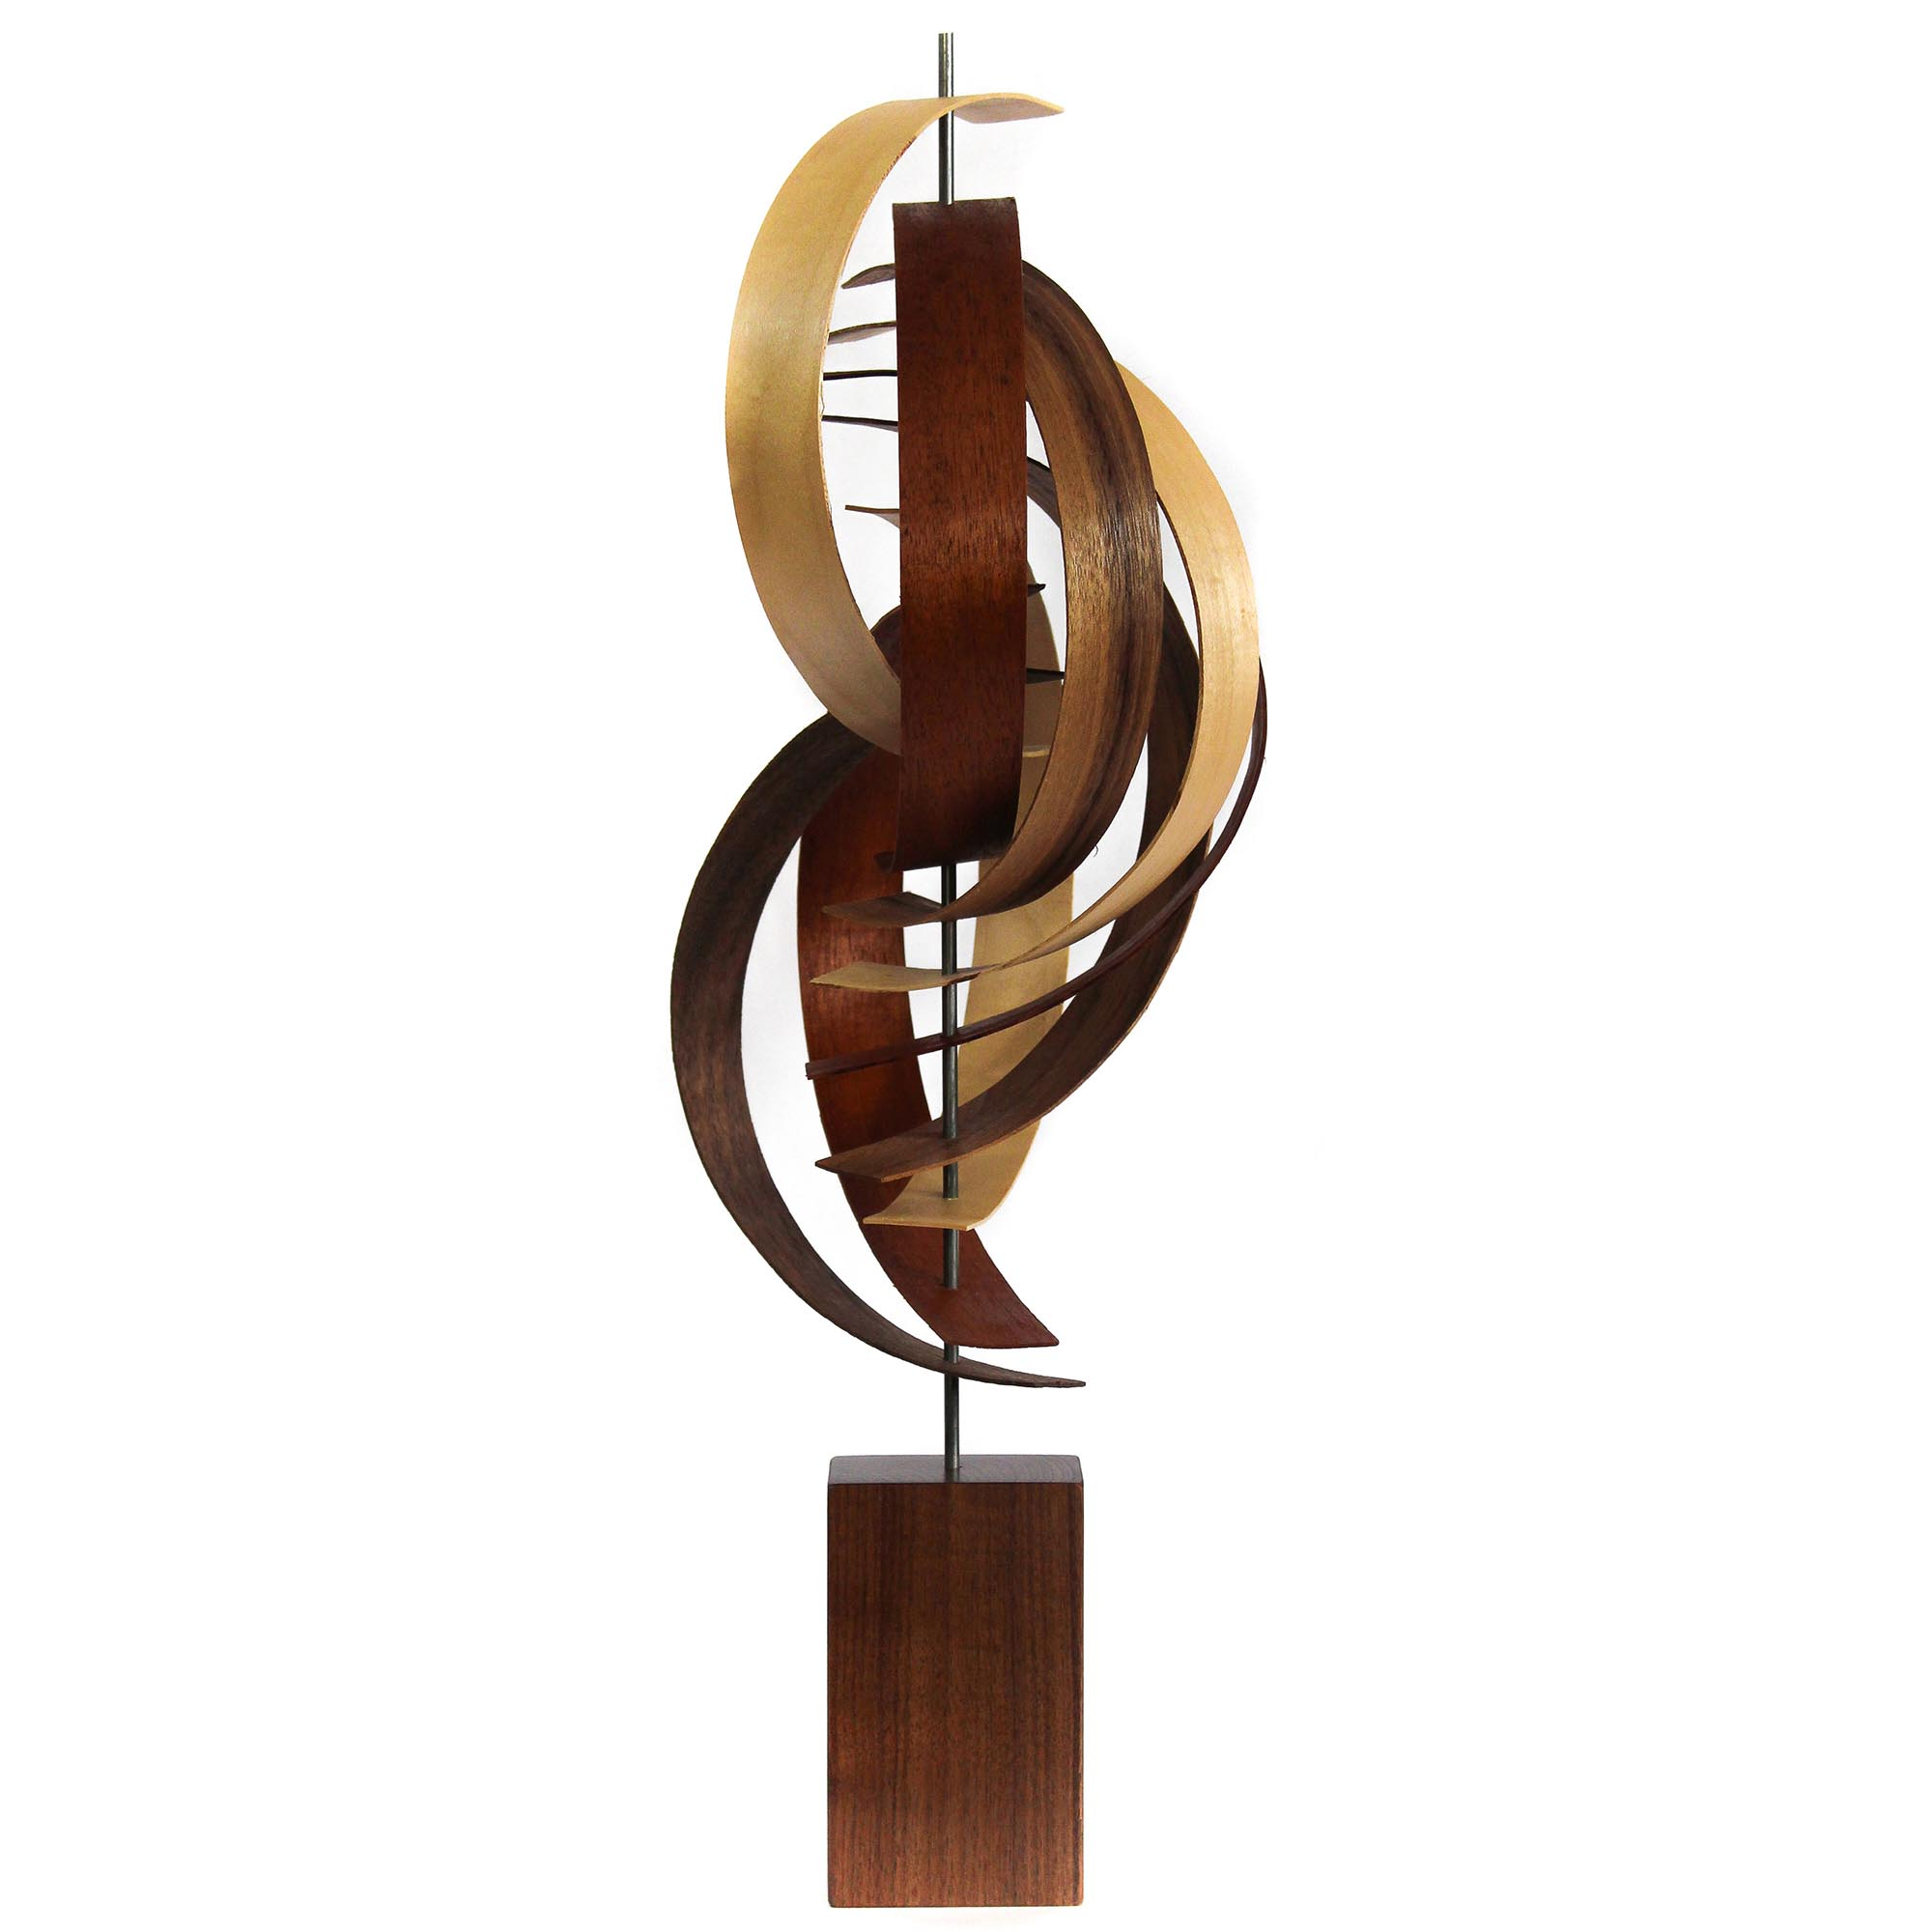 Jackson Wright 'Reach' 9in x 23in Contemporary Style Modern Wood Sculpture